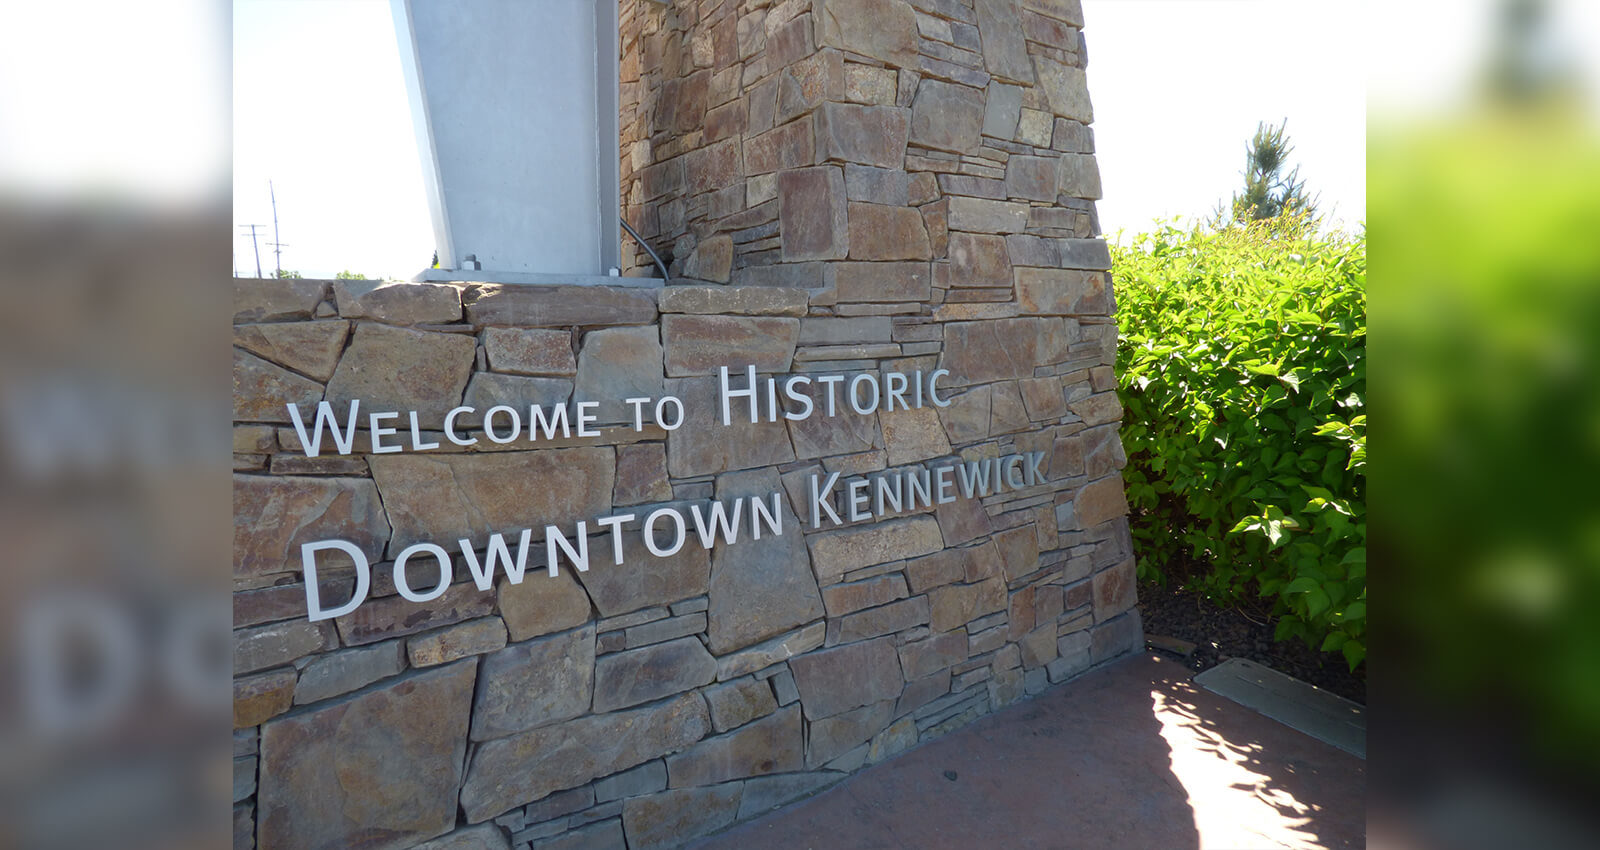 Welcome to Historic Downtown Kennewick sign on island's gateway arch.